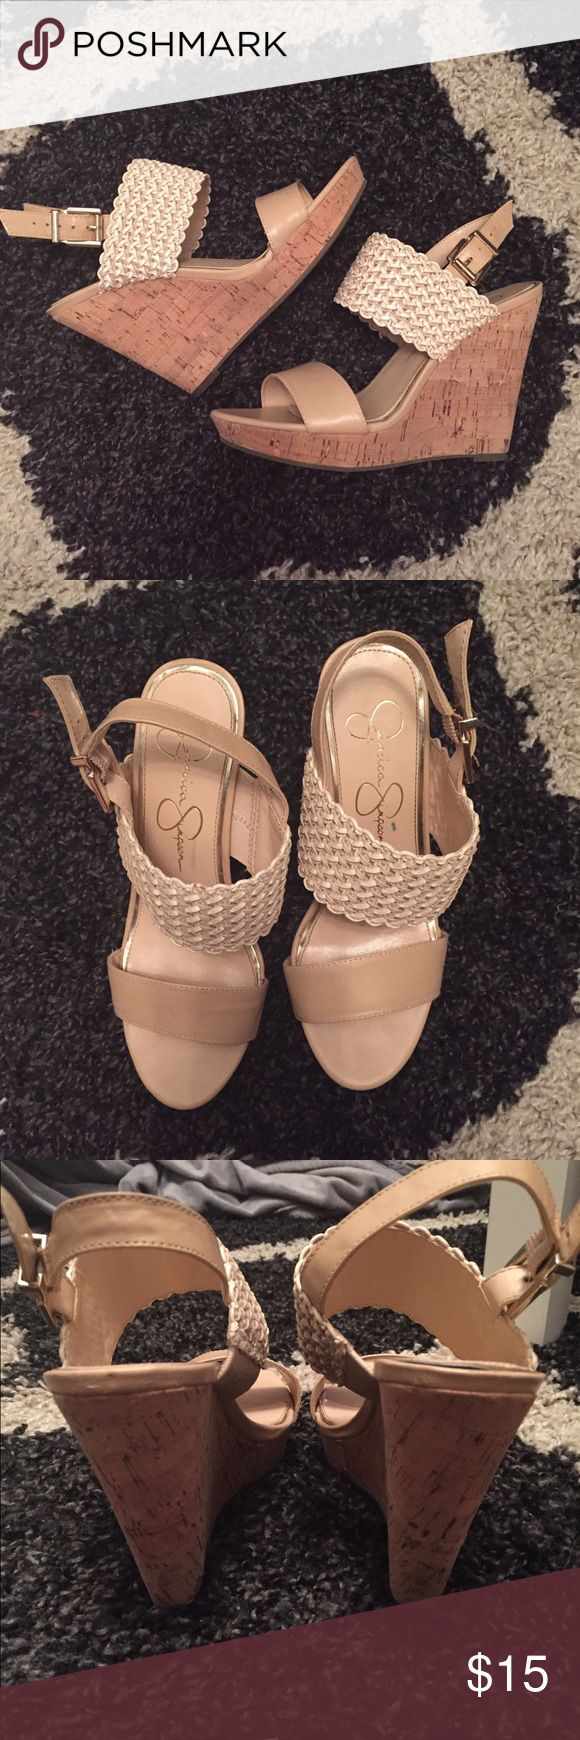 """Jessica Simpson Wedges Jessica Simpson Wedges. Size 6 and in excellent condition, worn once. The heel is 4"""" and the platform is .5"""". Selling for less on Ⓜ️ Jessica Simpson Shoes Wedges"""